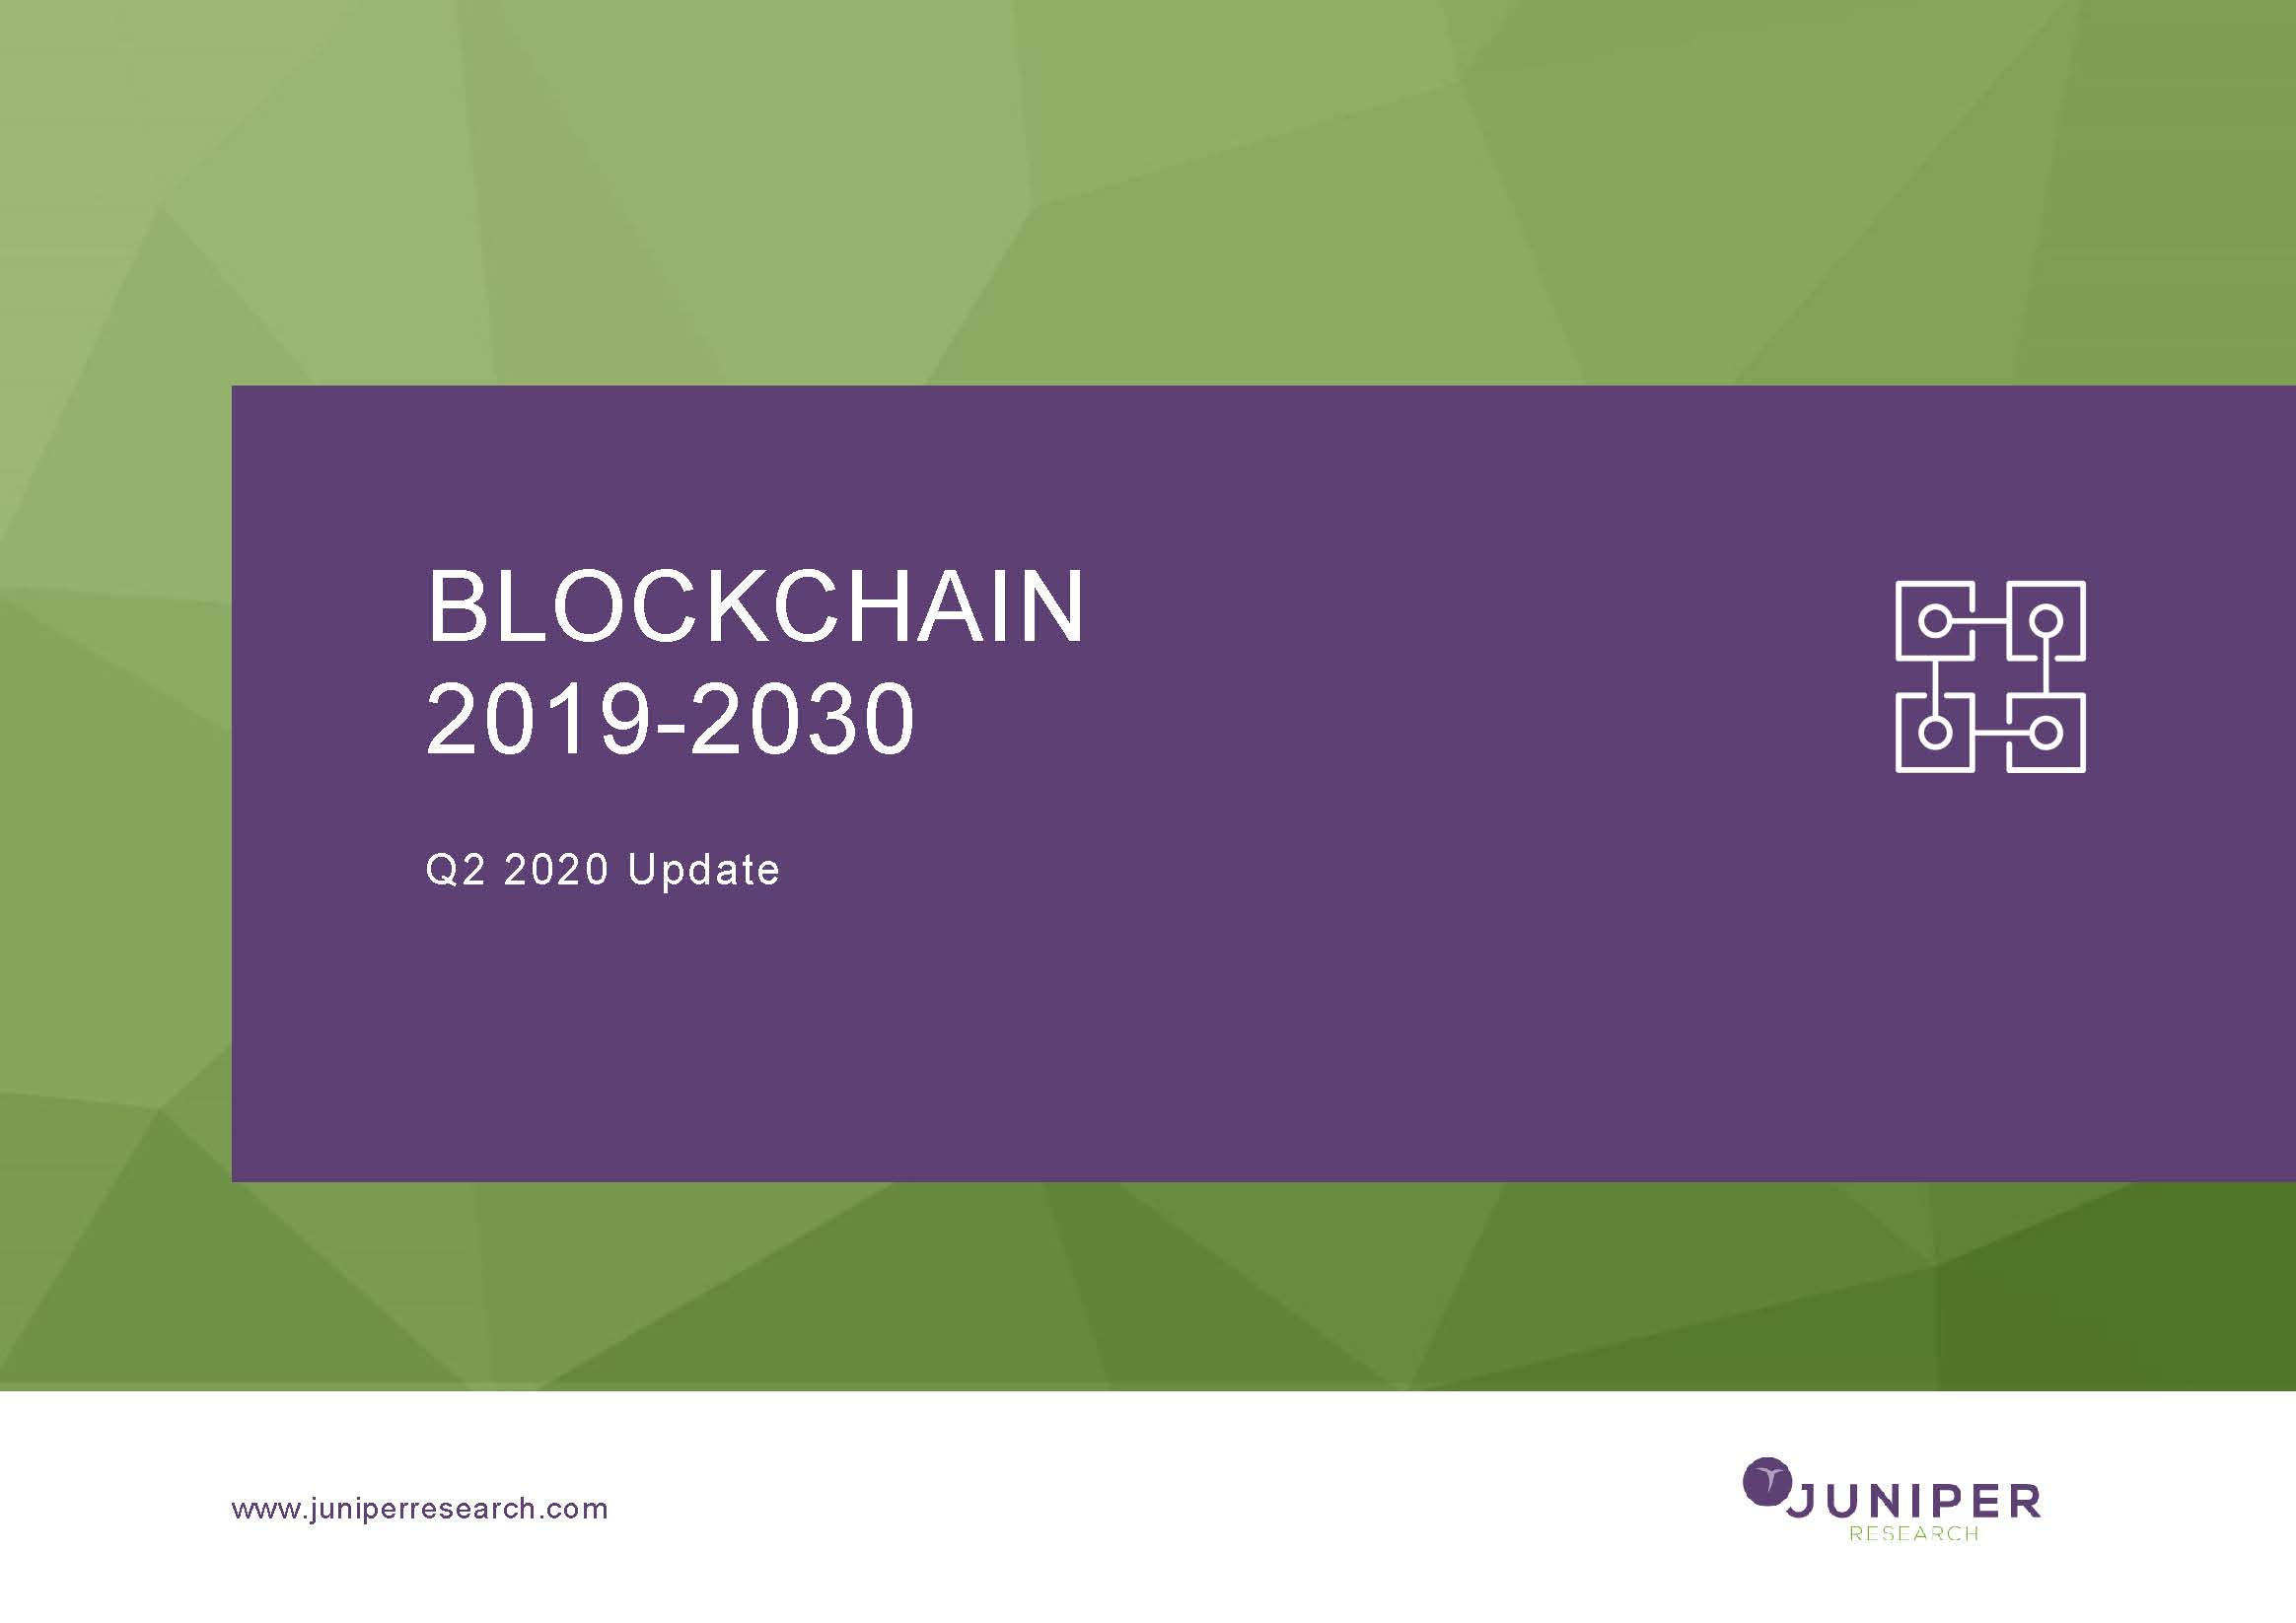 The Future of Blockchain - Q2 2020